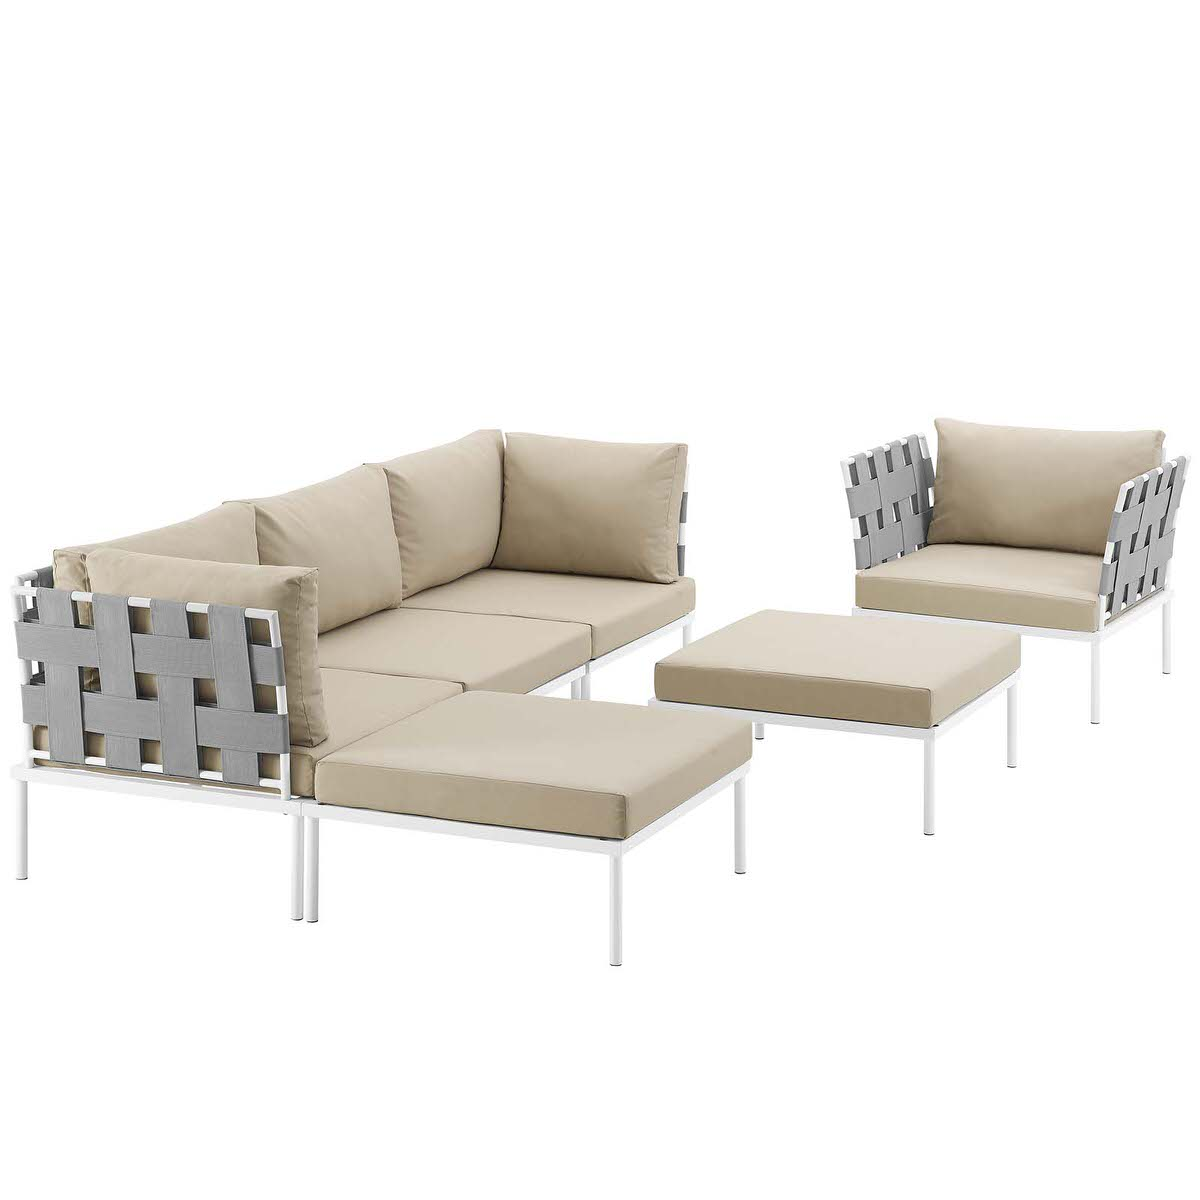 Harmony 6 Piece Outdoor Patio Aluminum Sectional Sofa Set White Beige by  Modern Living